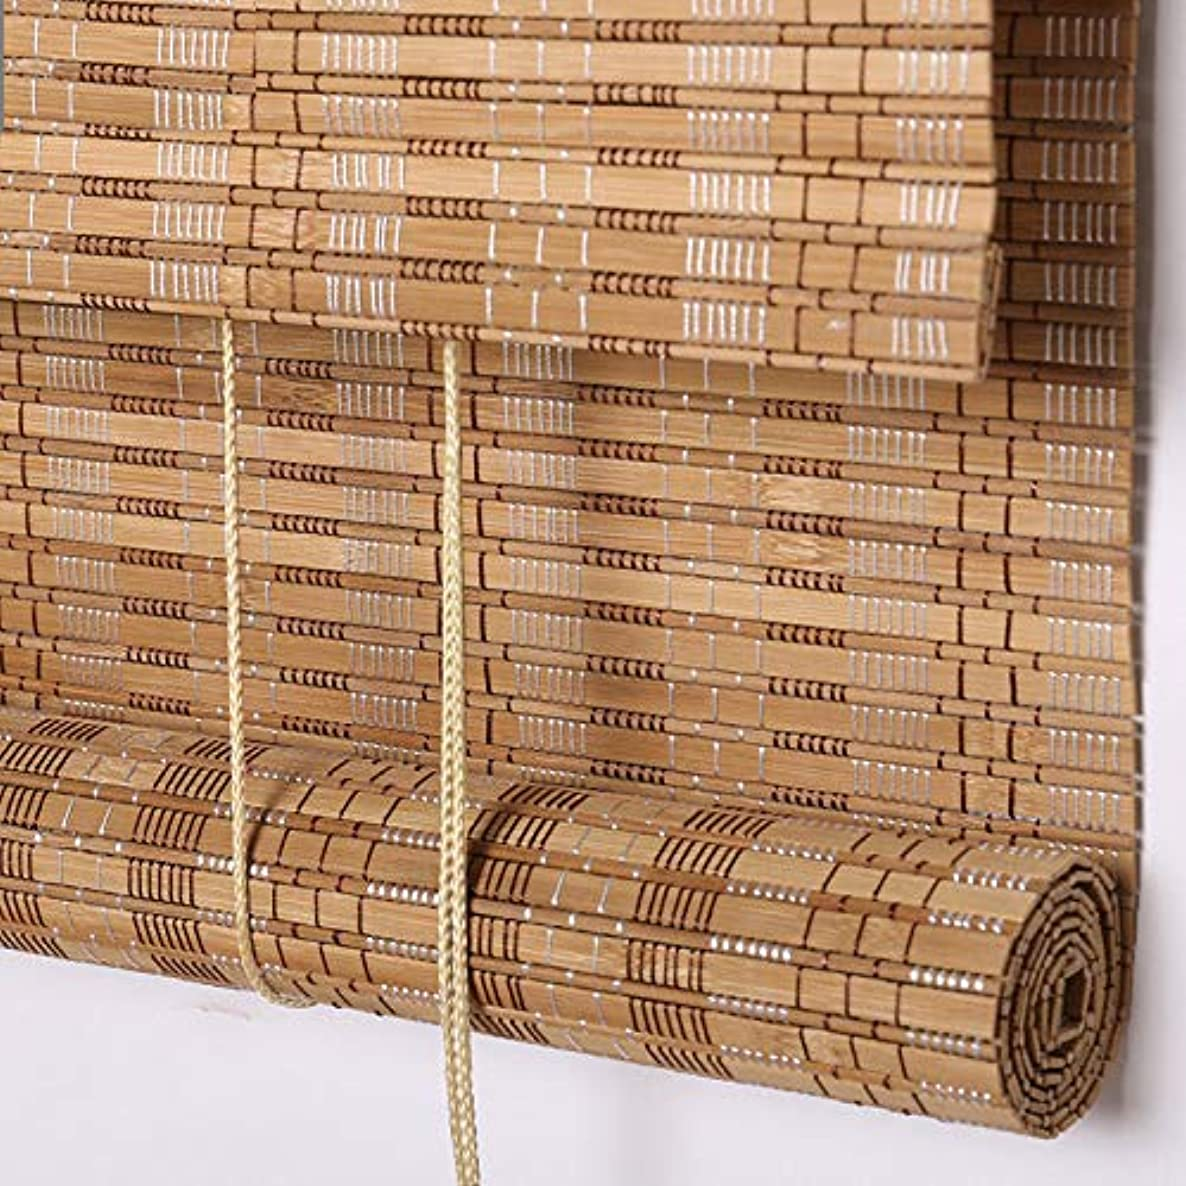 PASSENGER PIGEON Bamboo Roller Shades, Light Filtering Roll Up Blinds with Valance, 33